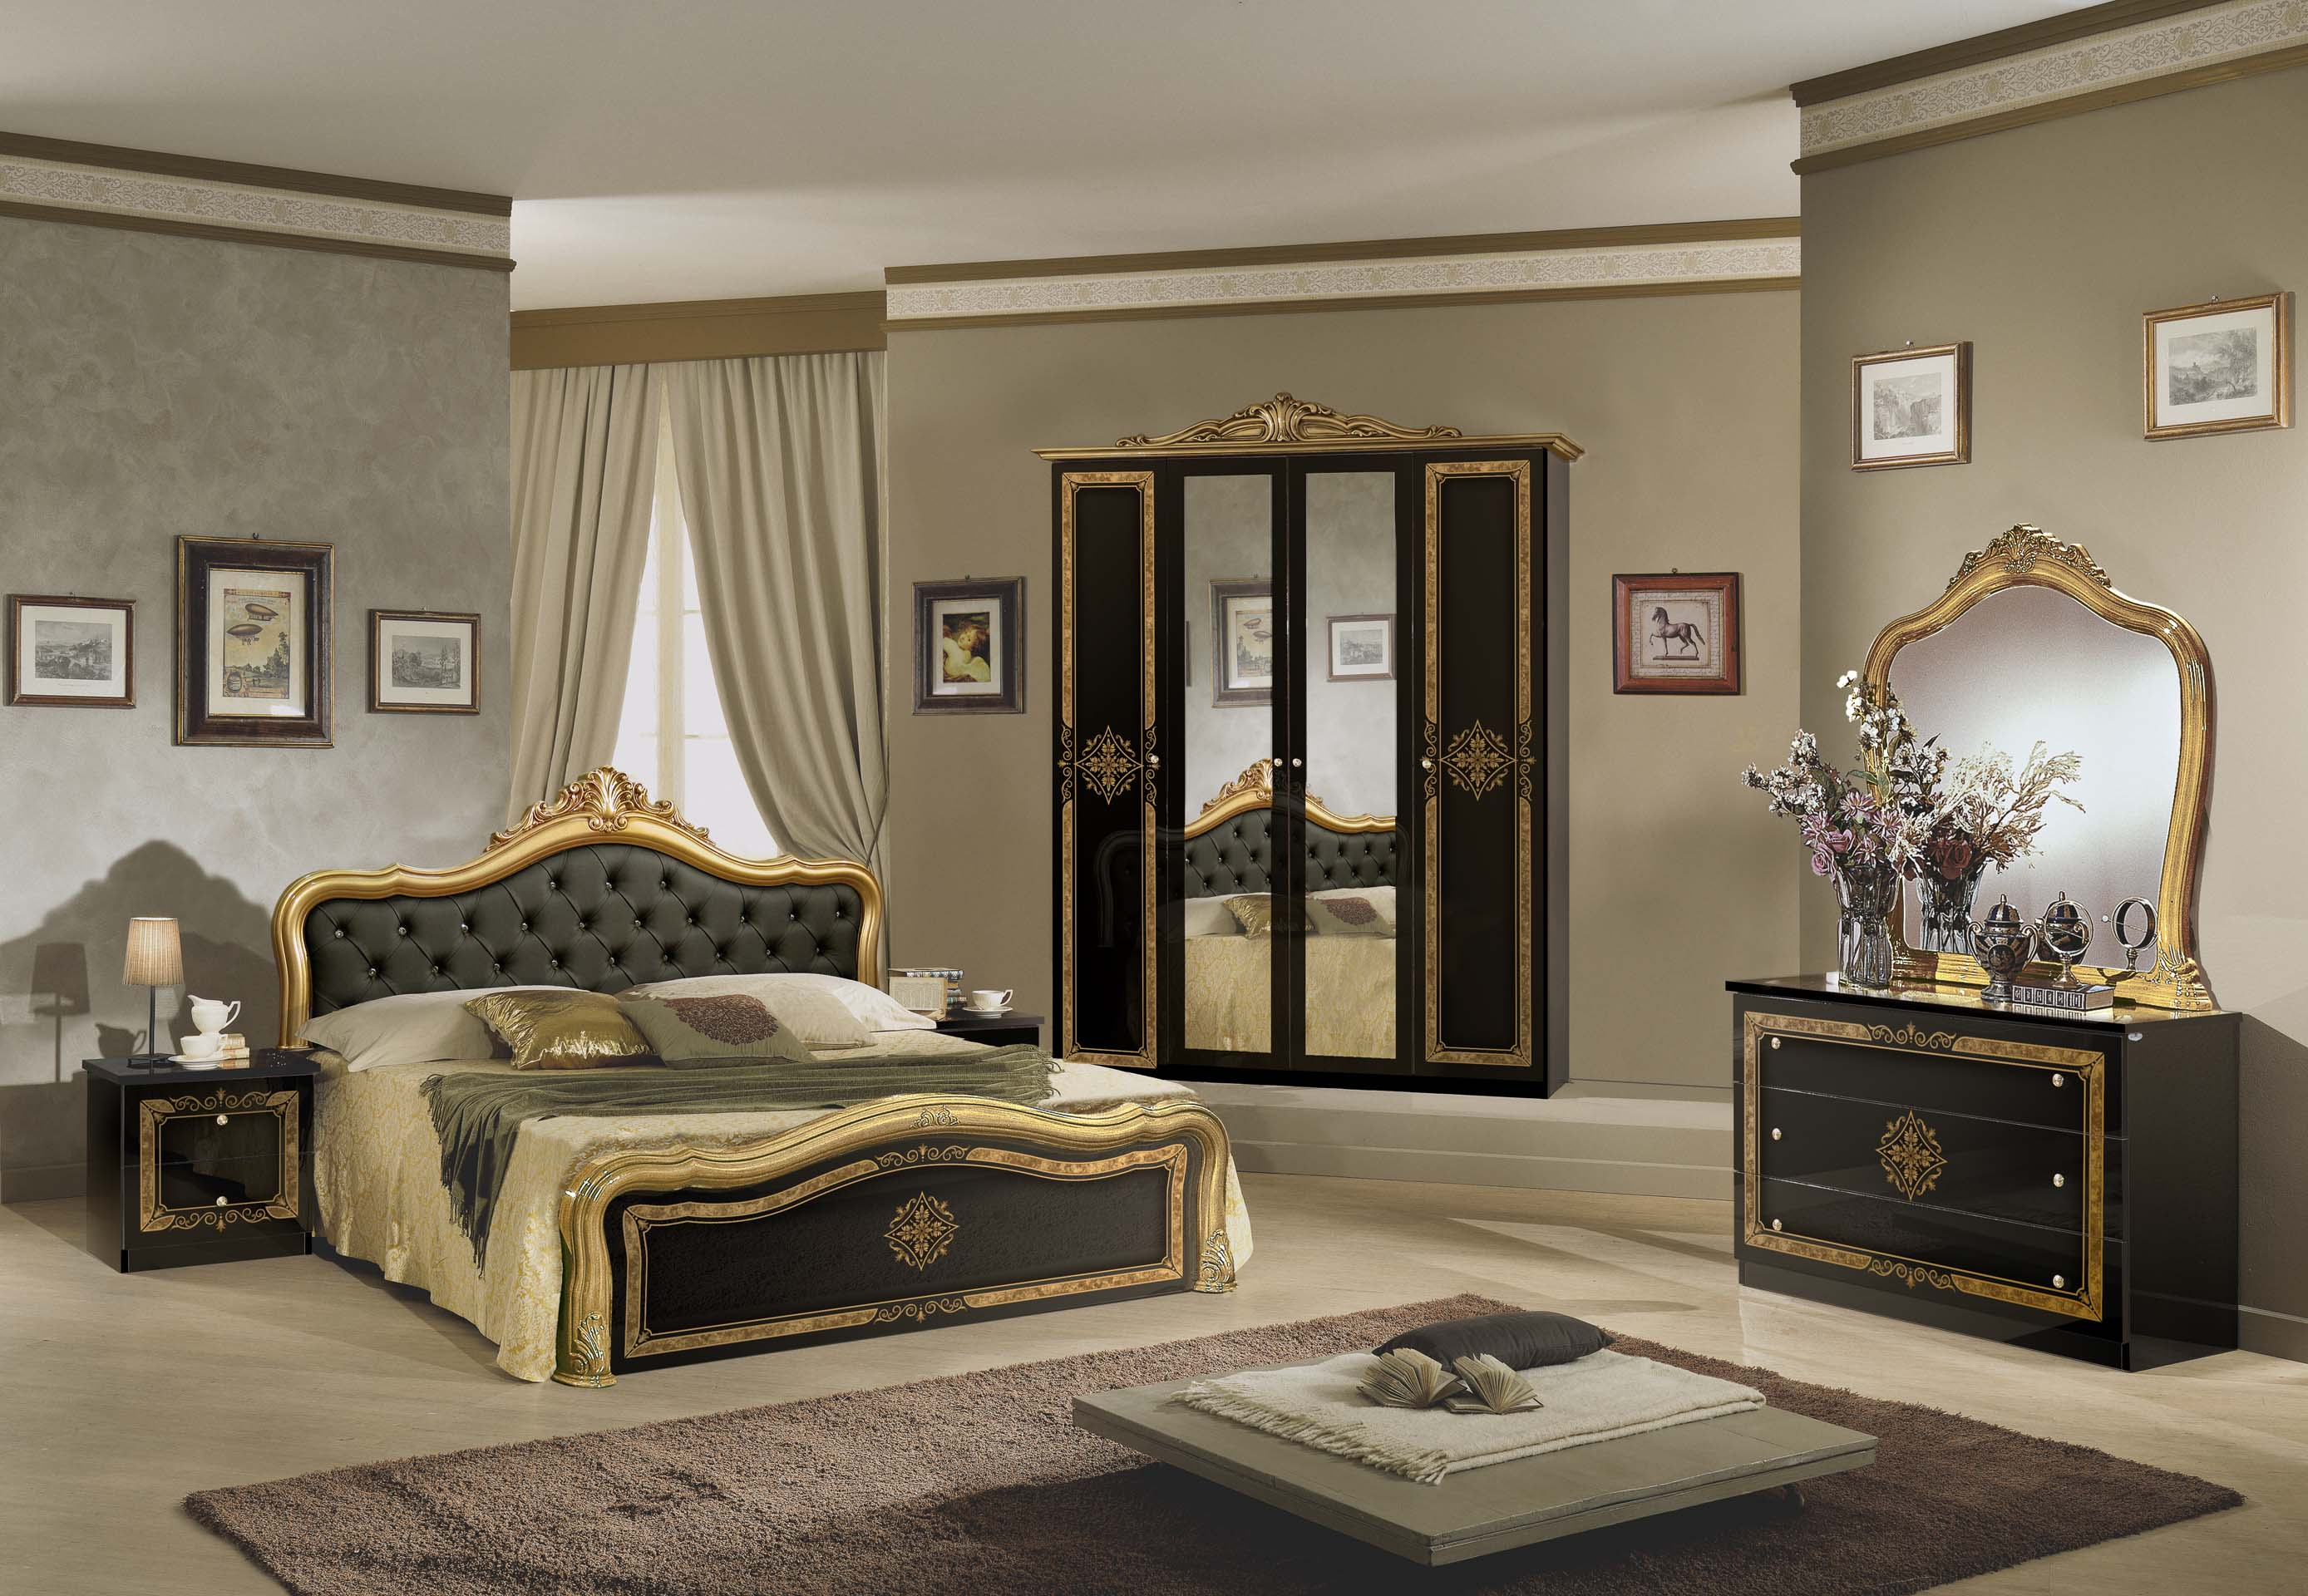 kommode lucy mit spiegel schwarz silber f r schlafzimmer klassik com m nec ns l spech. Black Bedroom Furniture Sets. Home Design Ideas